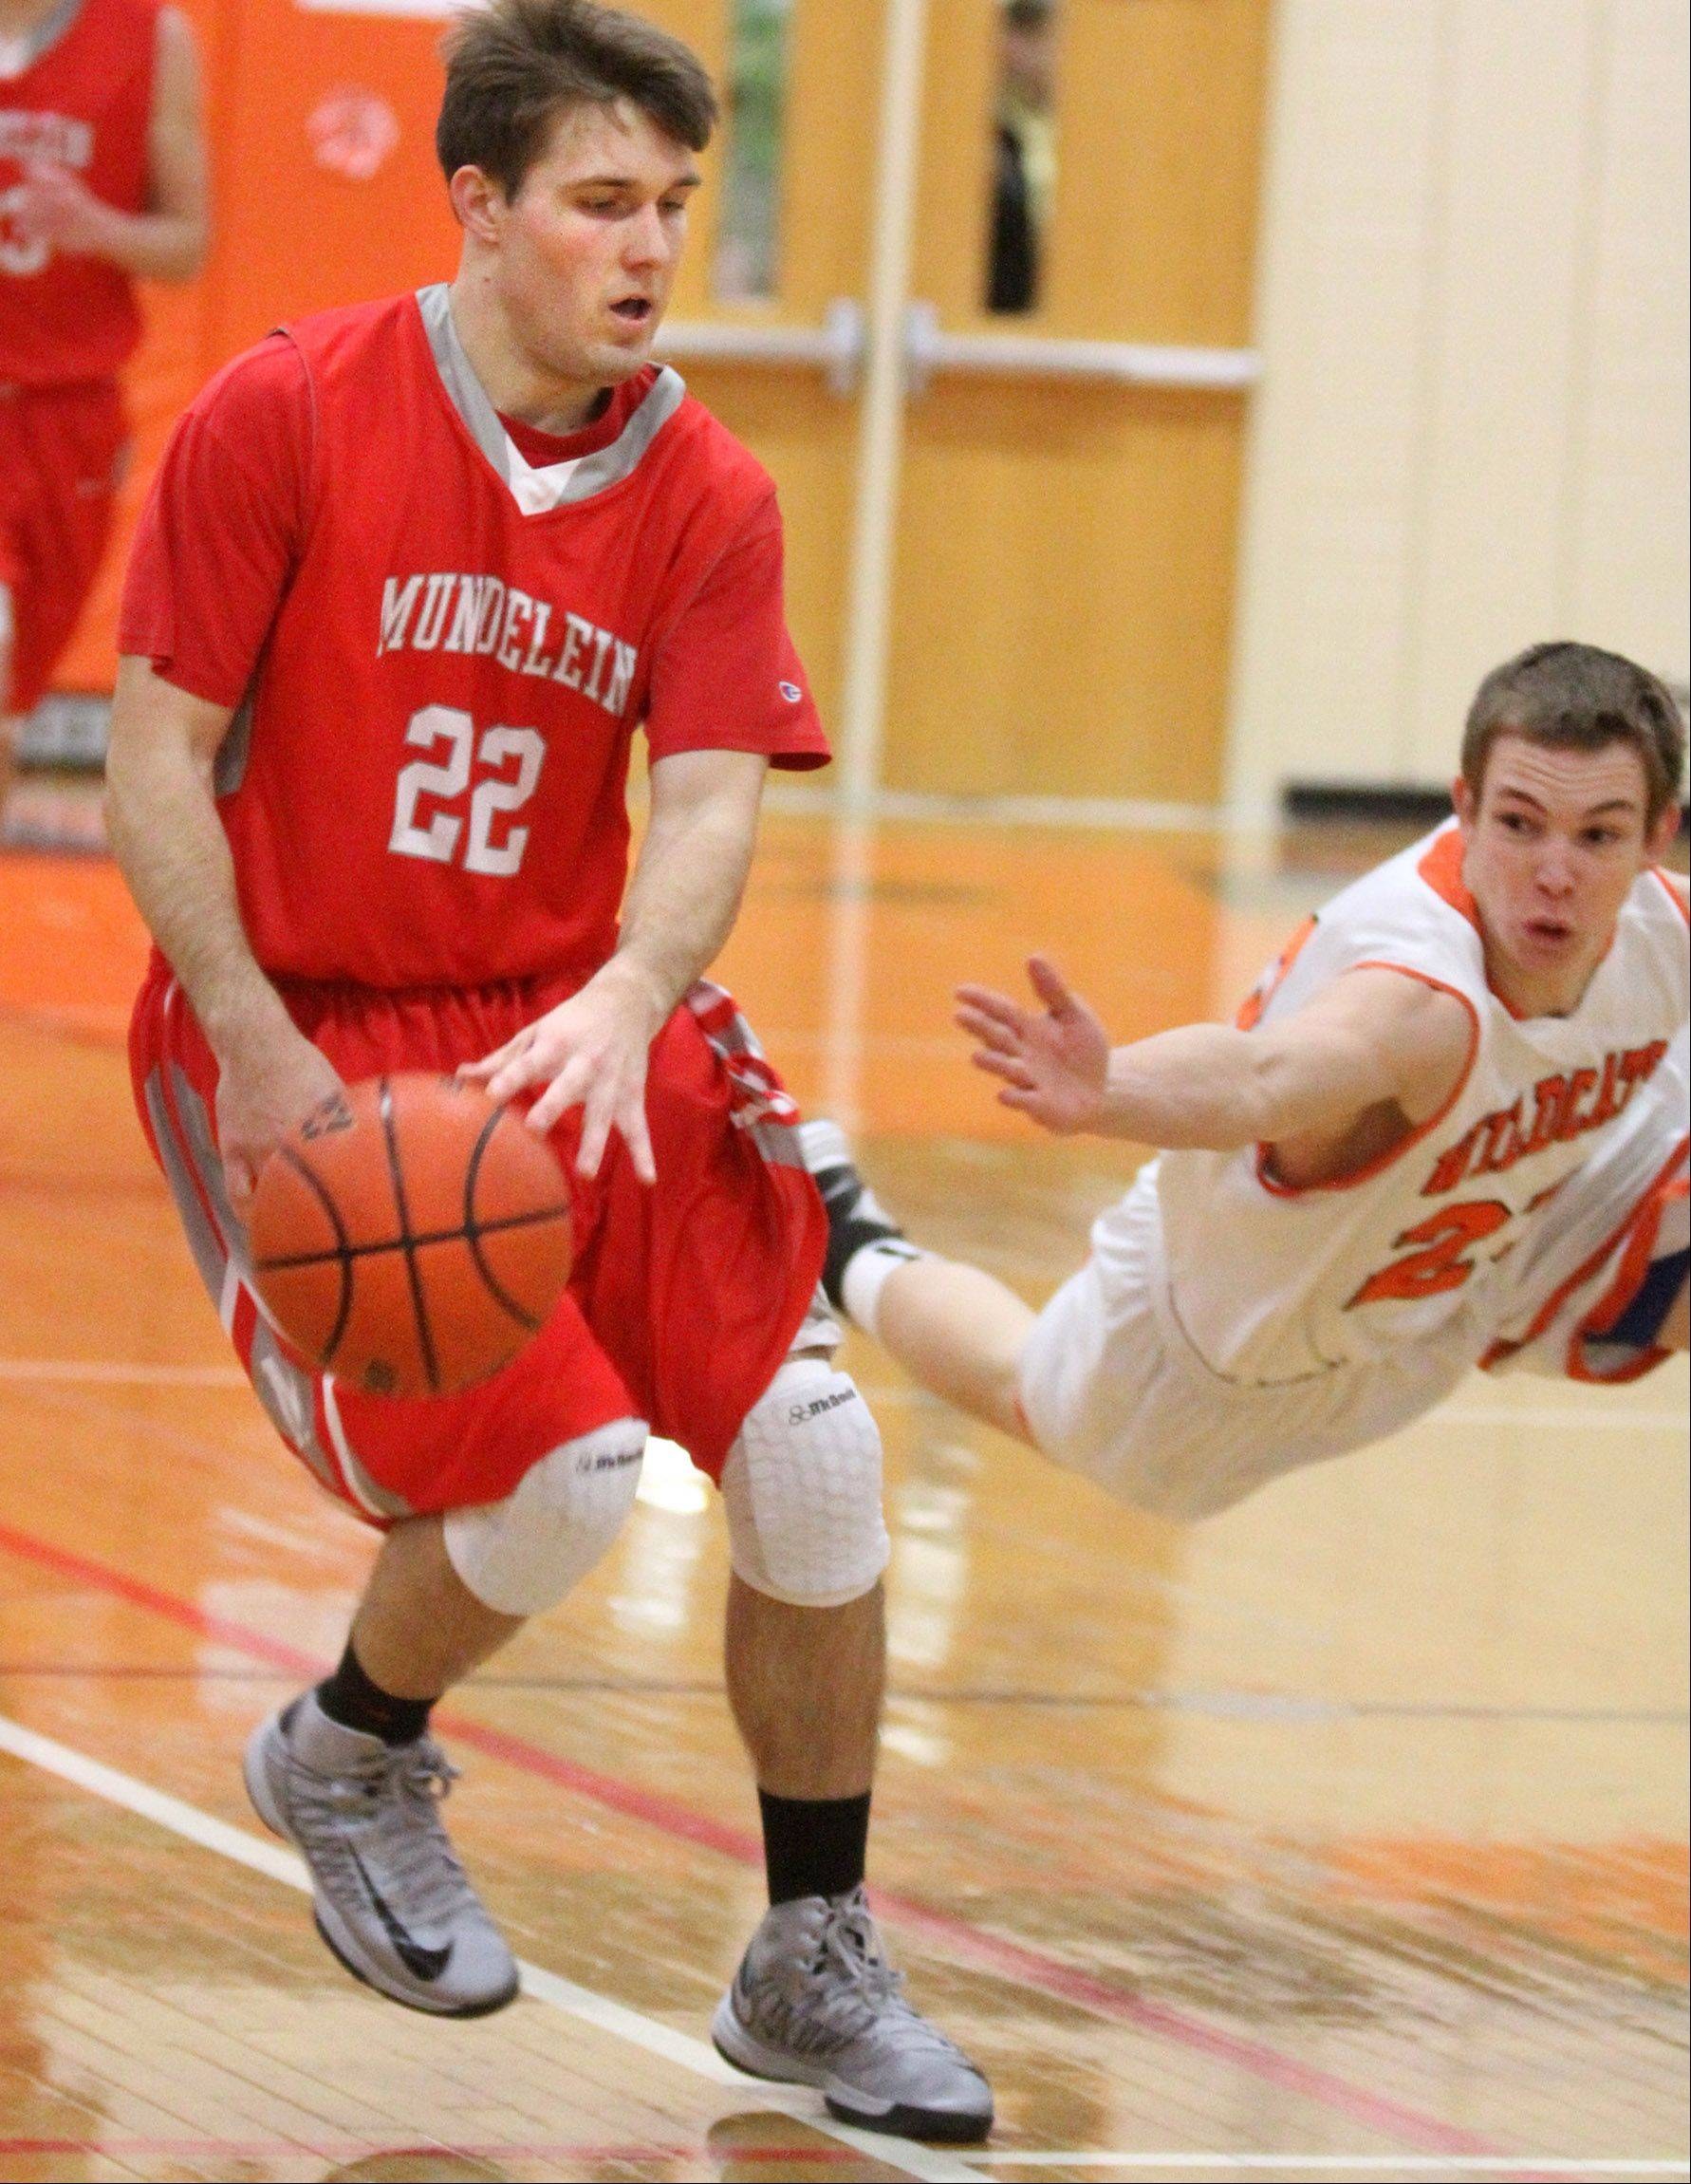 Mundelein guard Robert Knar pushes the ball upcourt as Libertyville defender Bryan Scanlan dives for the ball.